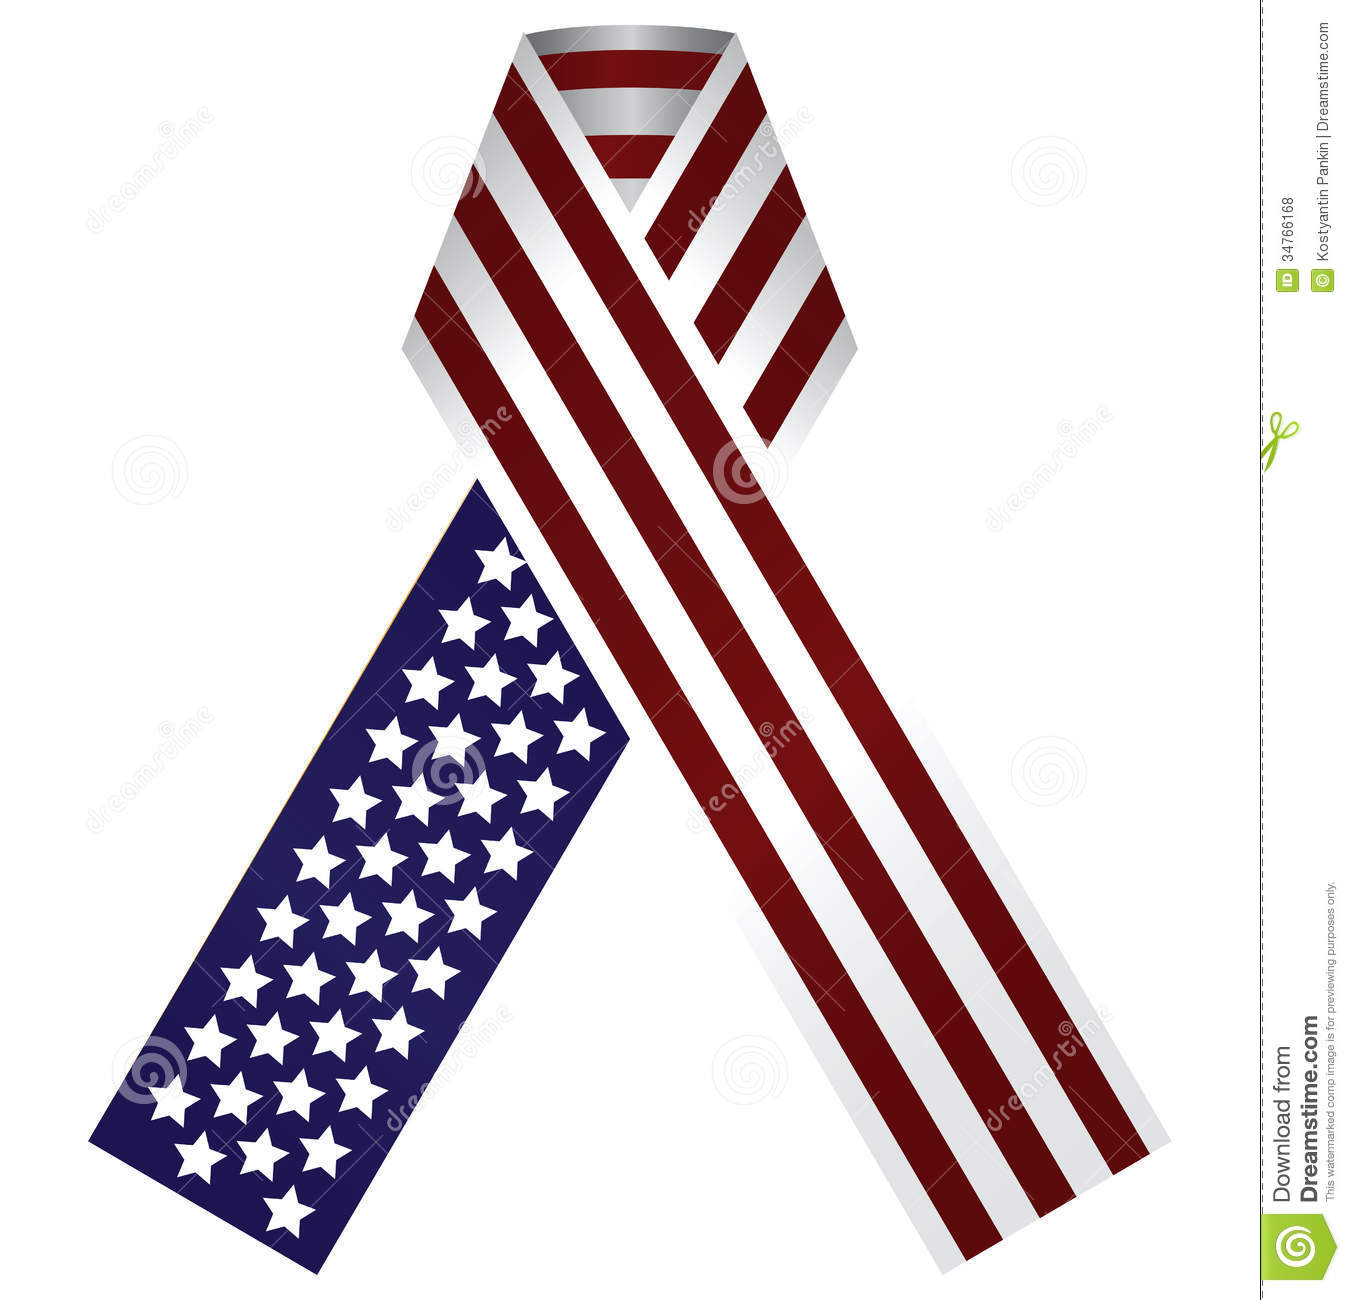 Ribbon clipart memorial day #6